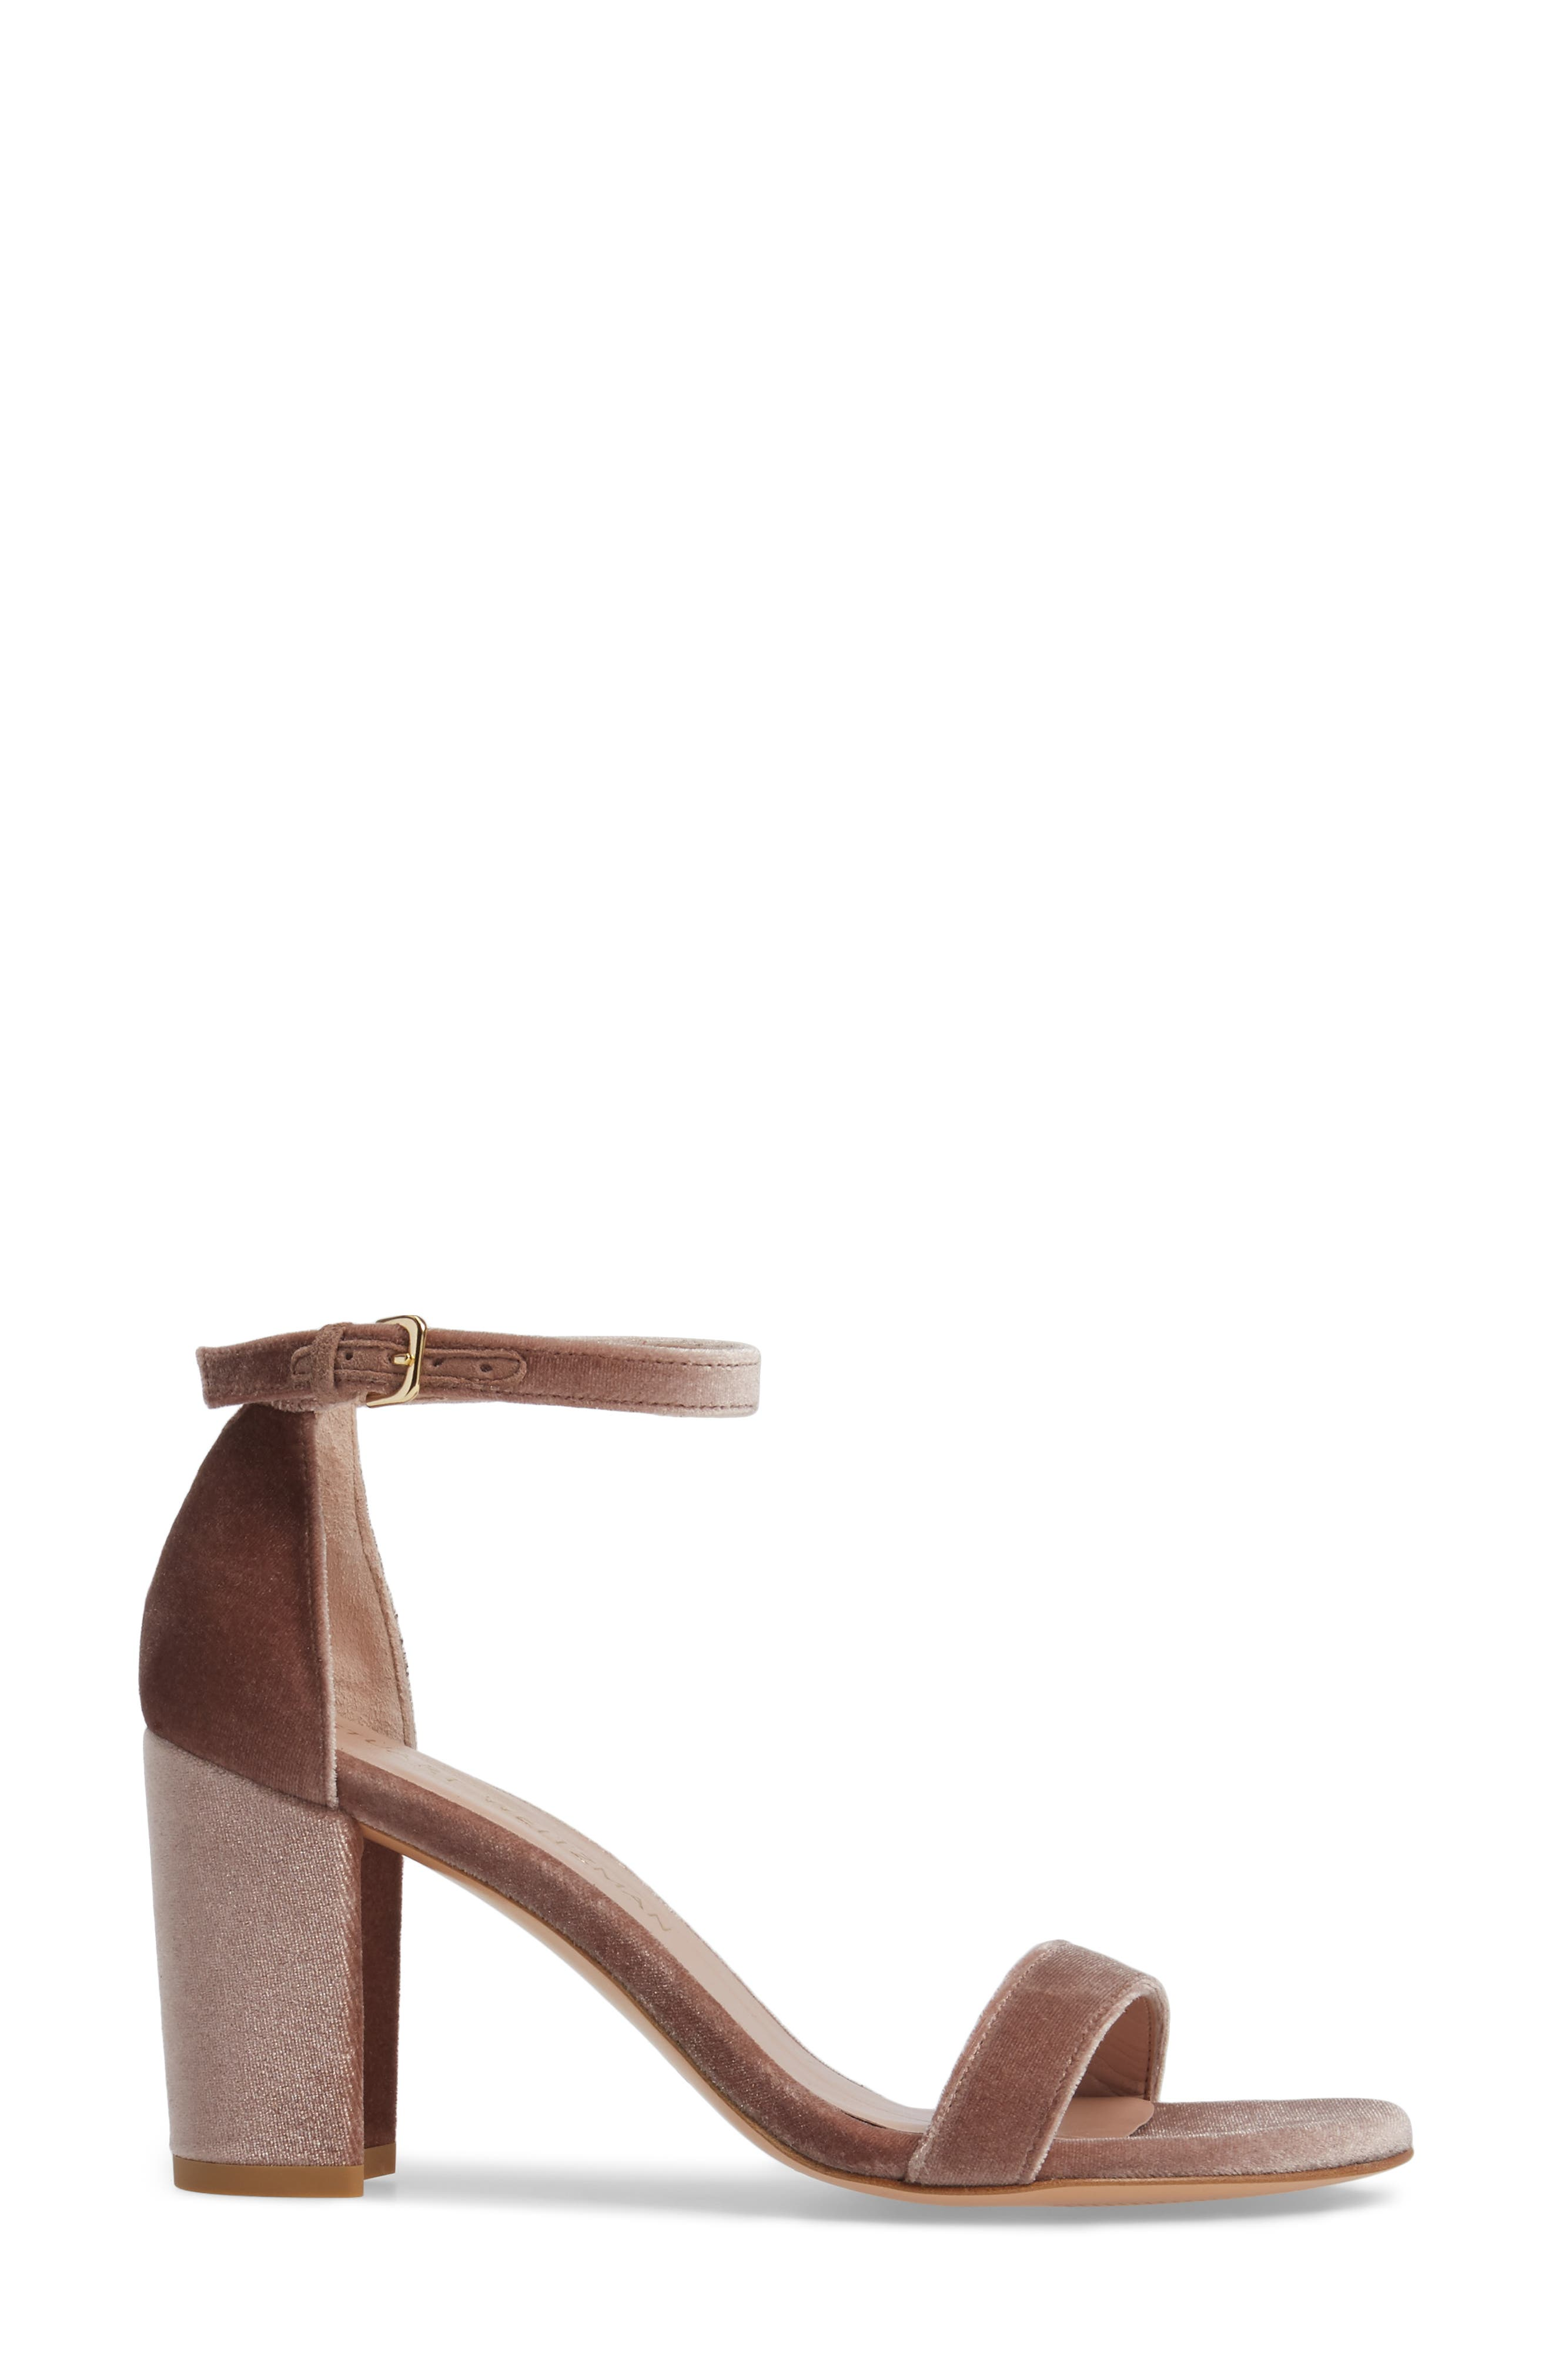 NearlyNude Ankle Strap Sandal,                             Alternate thumbnail 81, color,